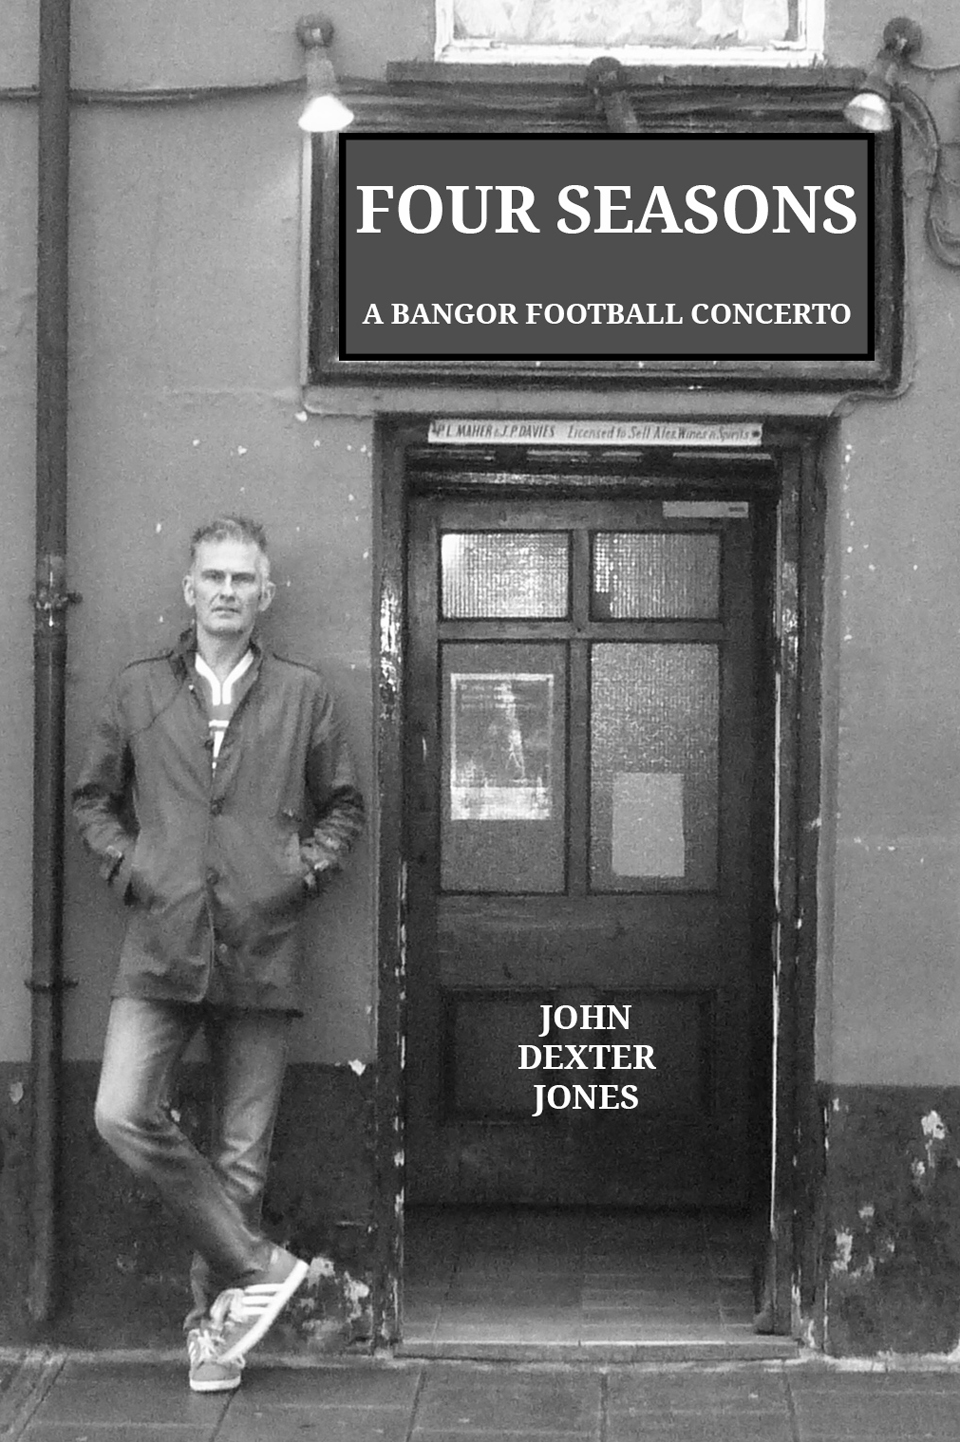 John Dexter Jones - Four Seasons - A Bangor Football Concerto